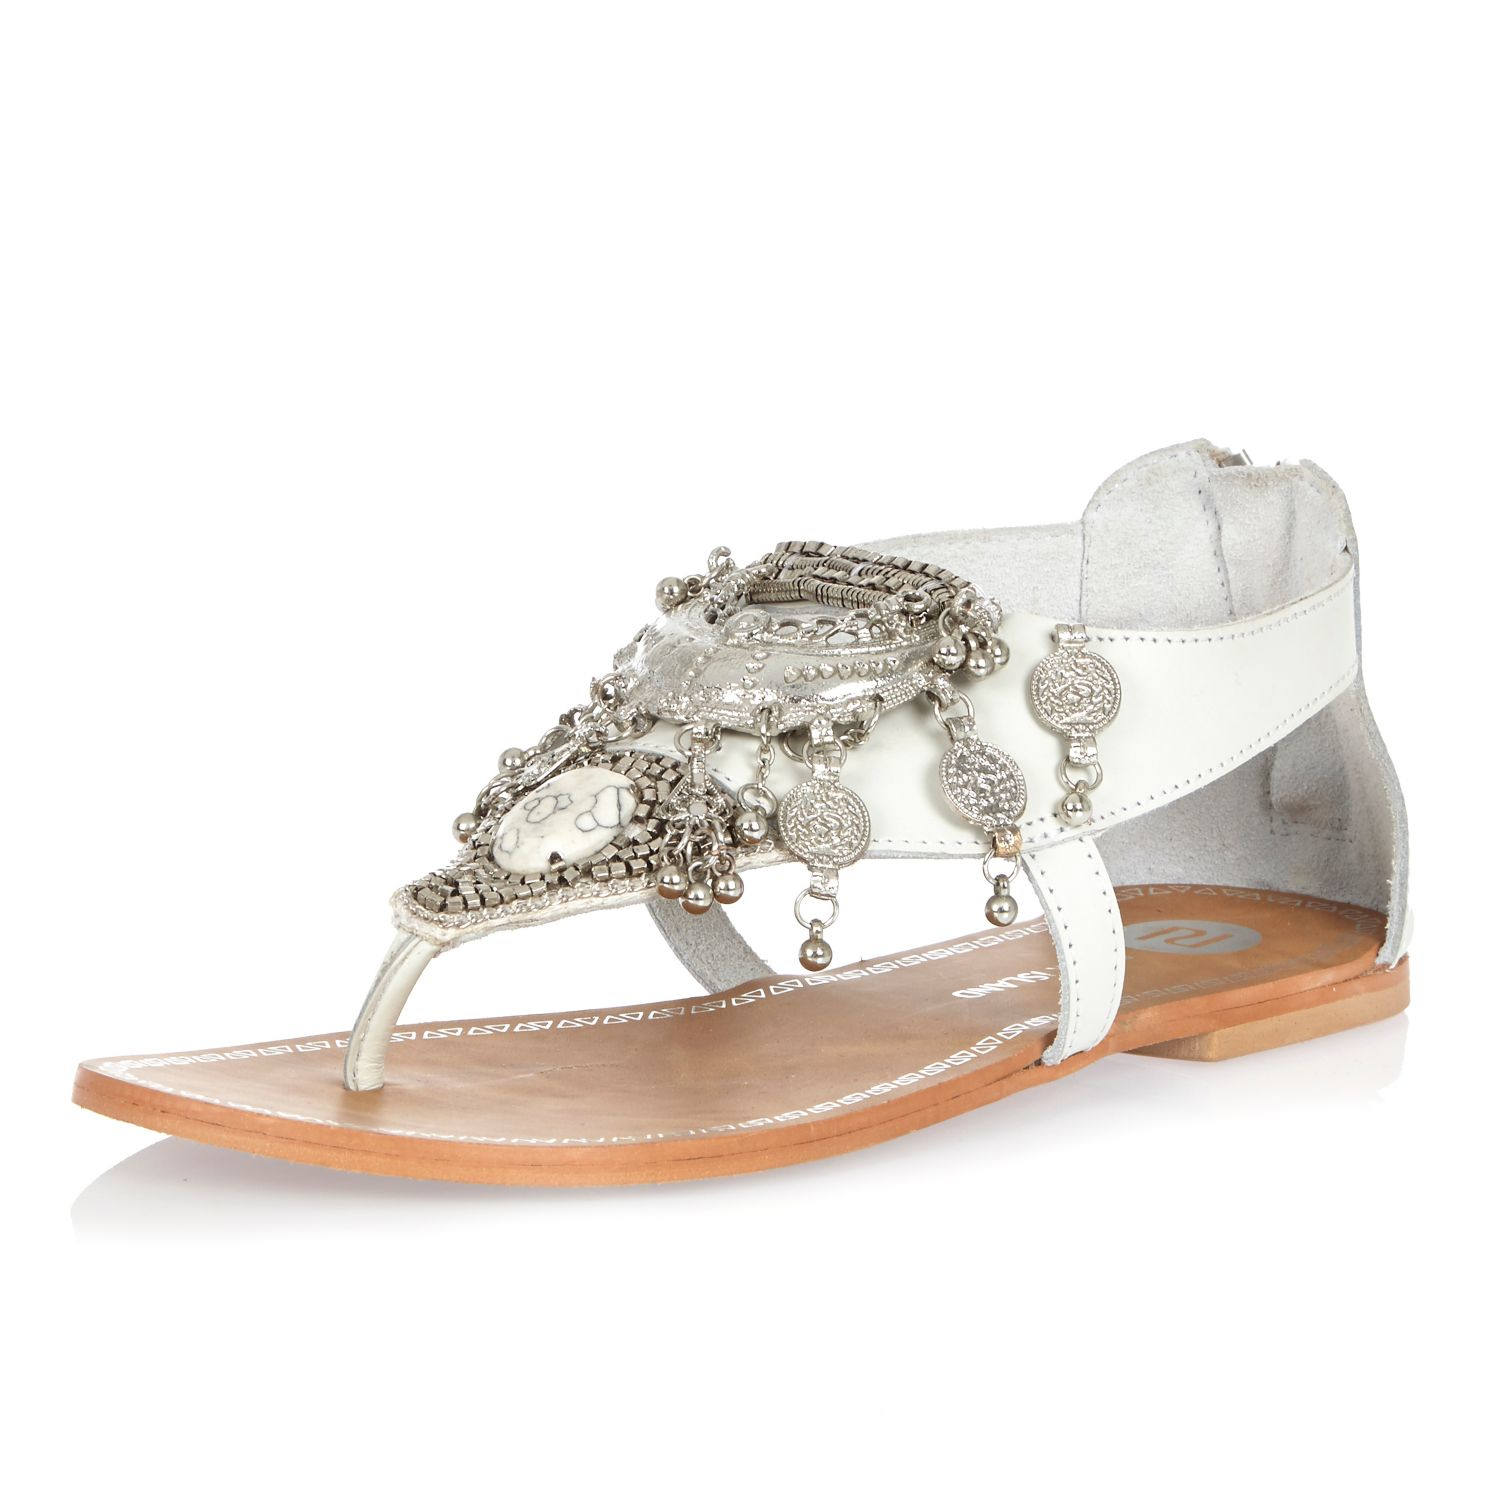 Lyst River Island White Leather Coin Embellished Sandals